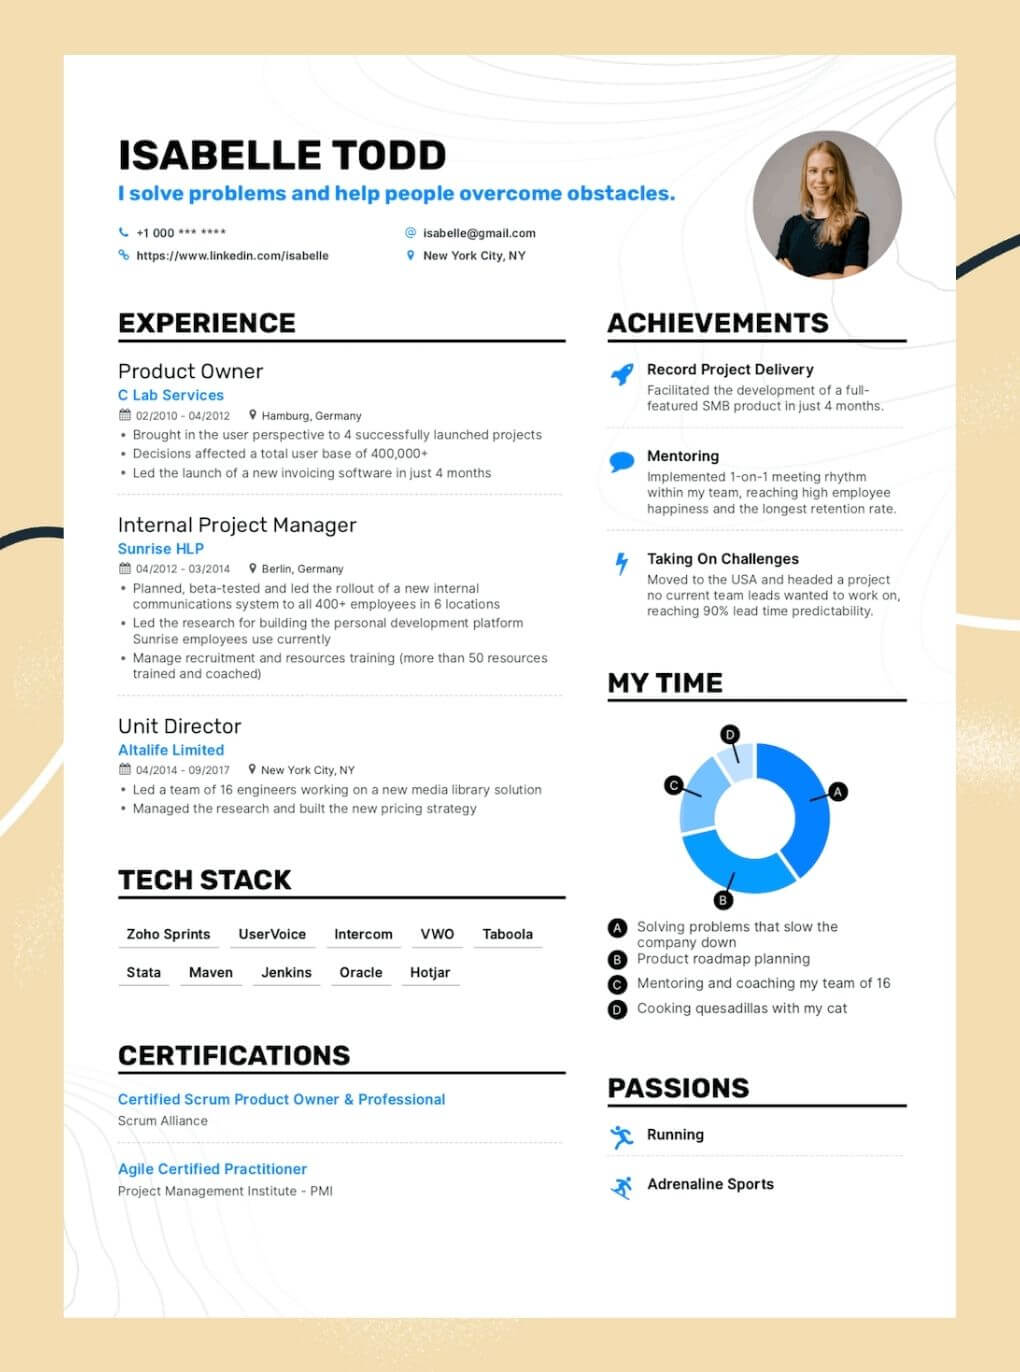 Enhancv Resume Icons – Should You Use Them and How?